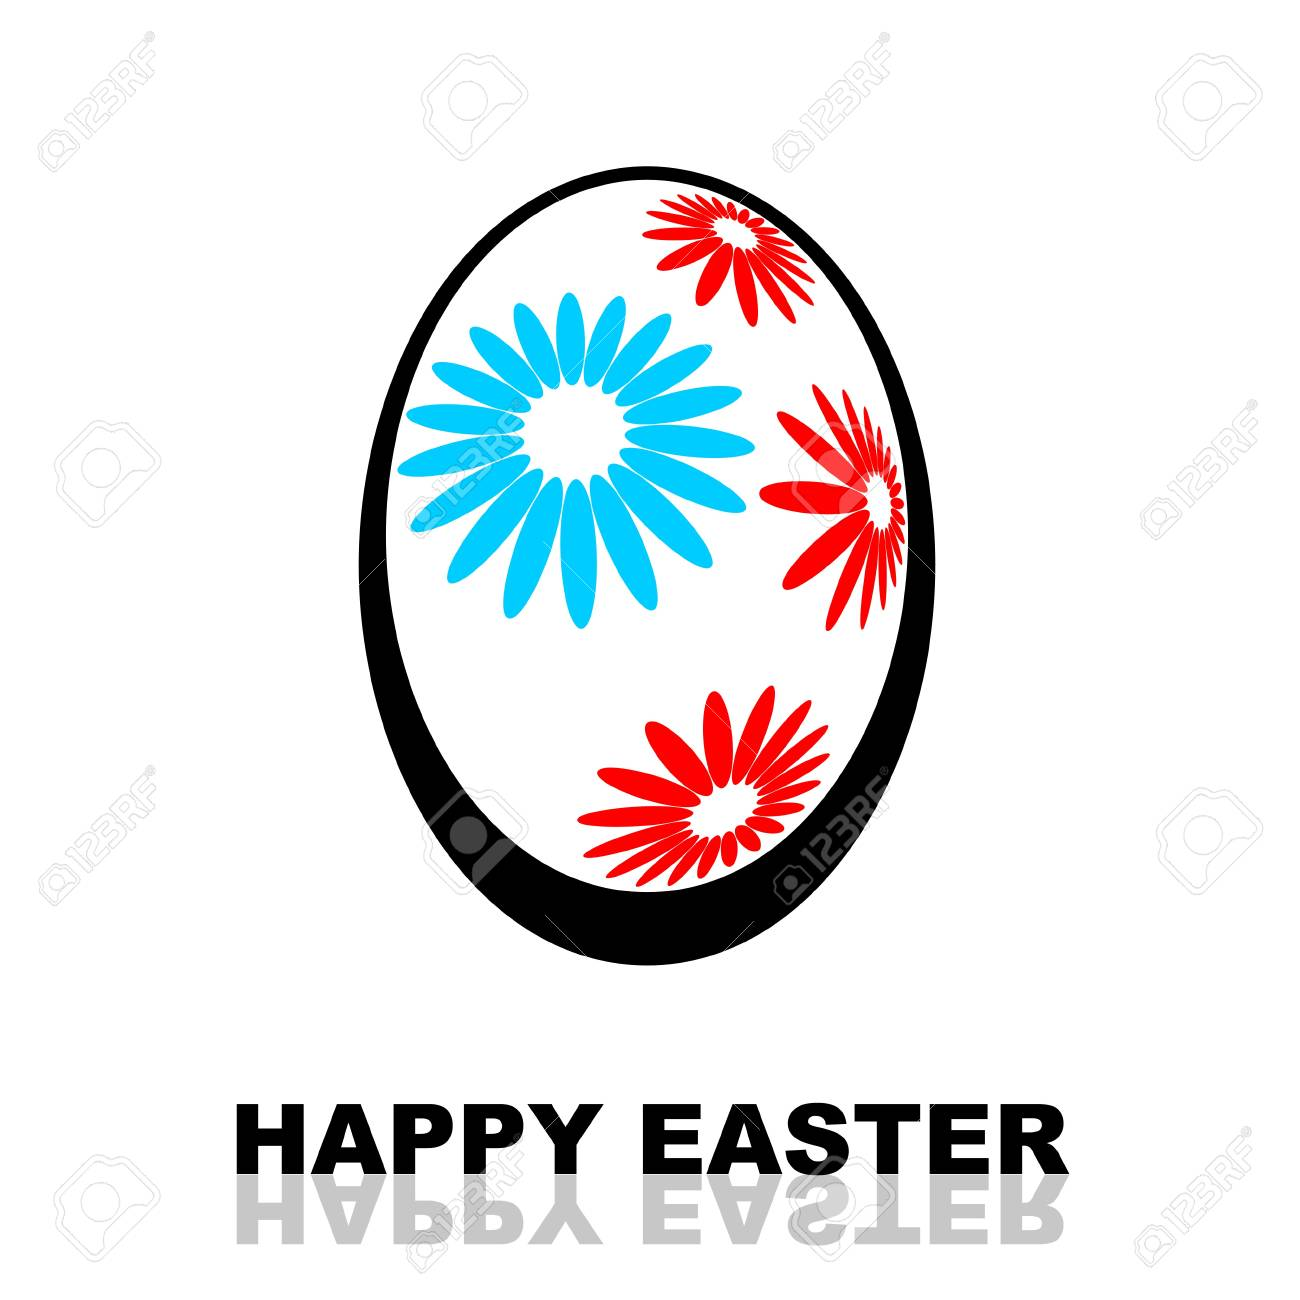 Happy Easter illustration with floral decorated Easter egg isolated on white background Stock Illustration - 12701223